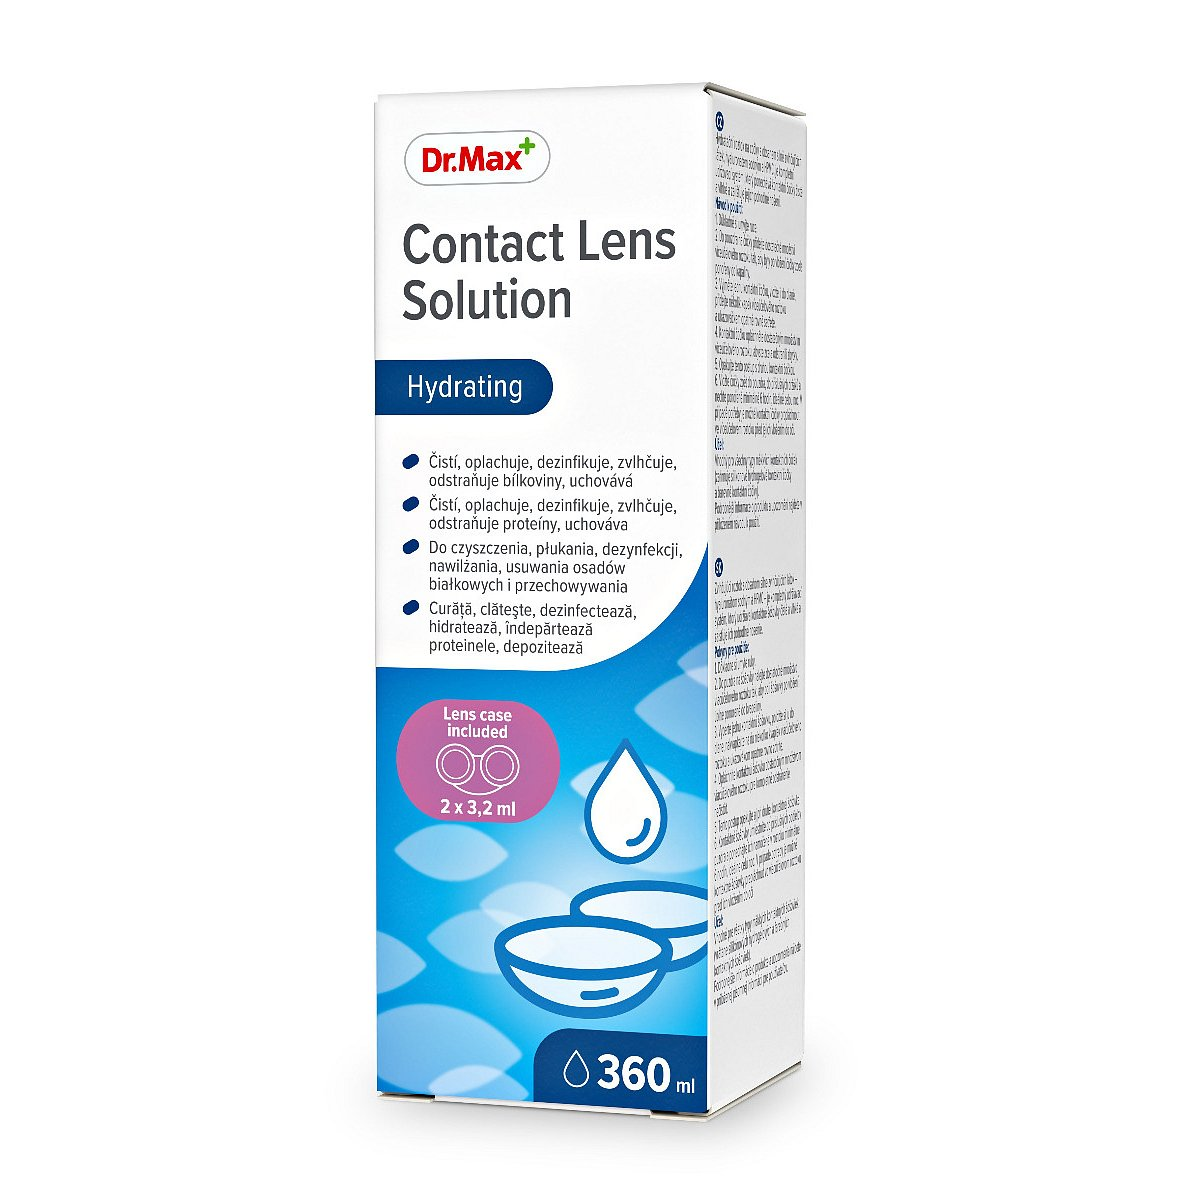 Dr.Max Contact Lens Solution roztok na kontaktní čočky 360 ml